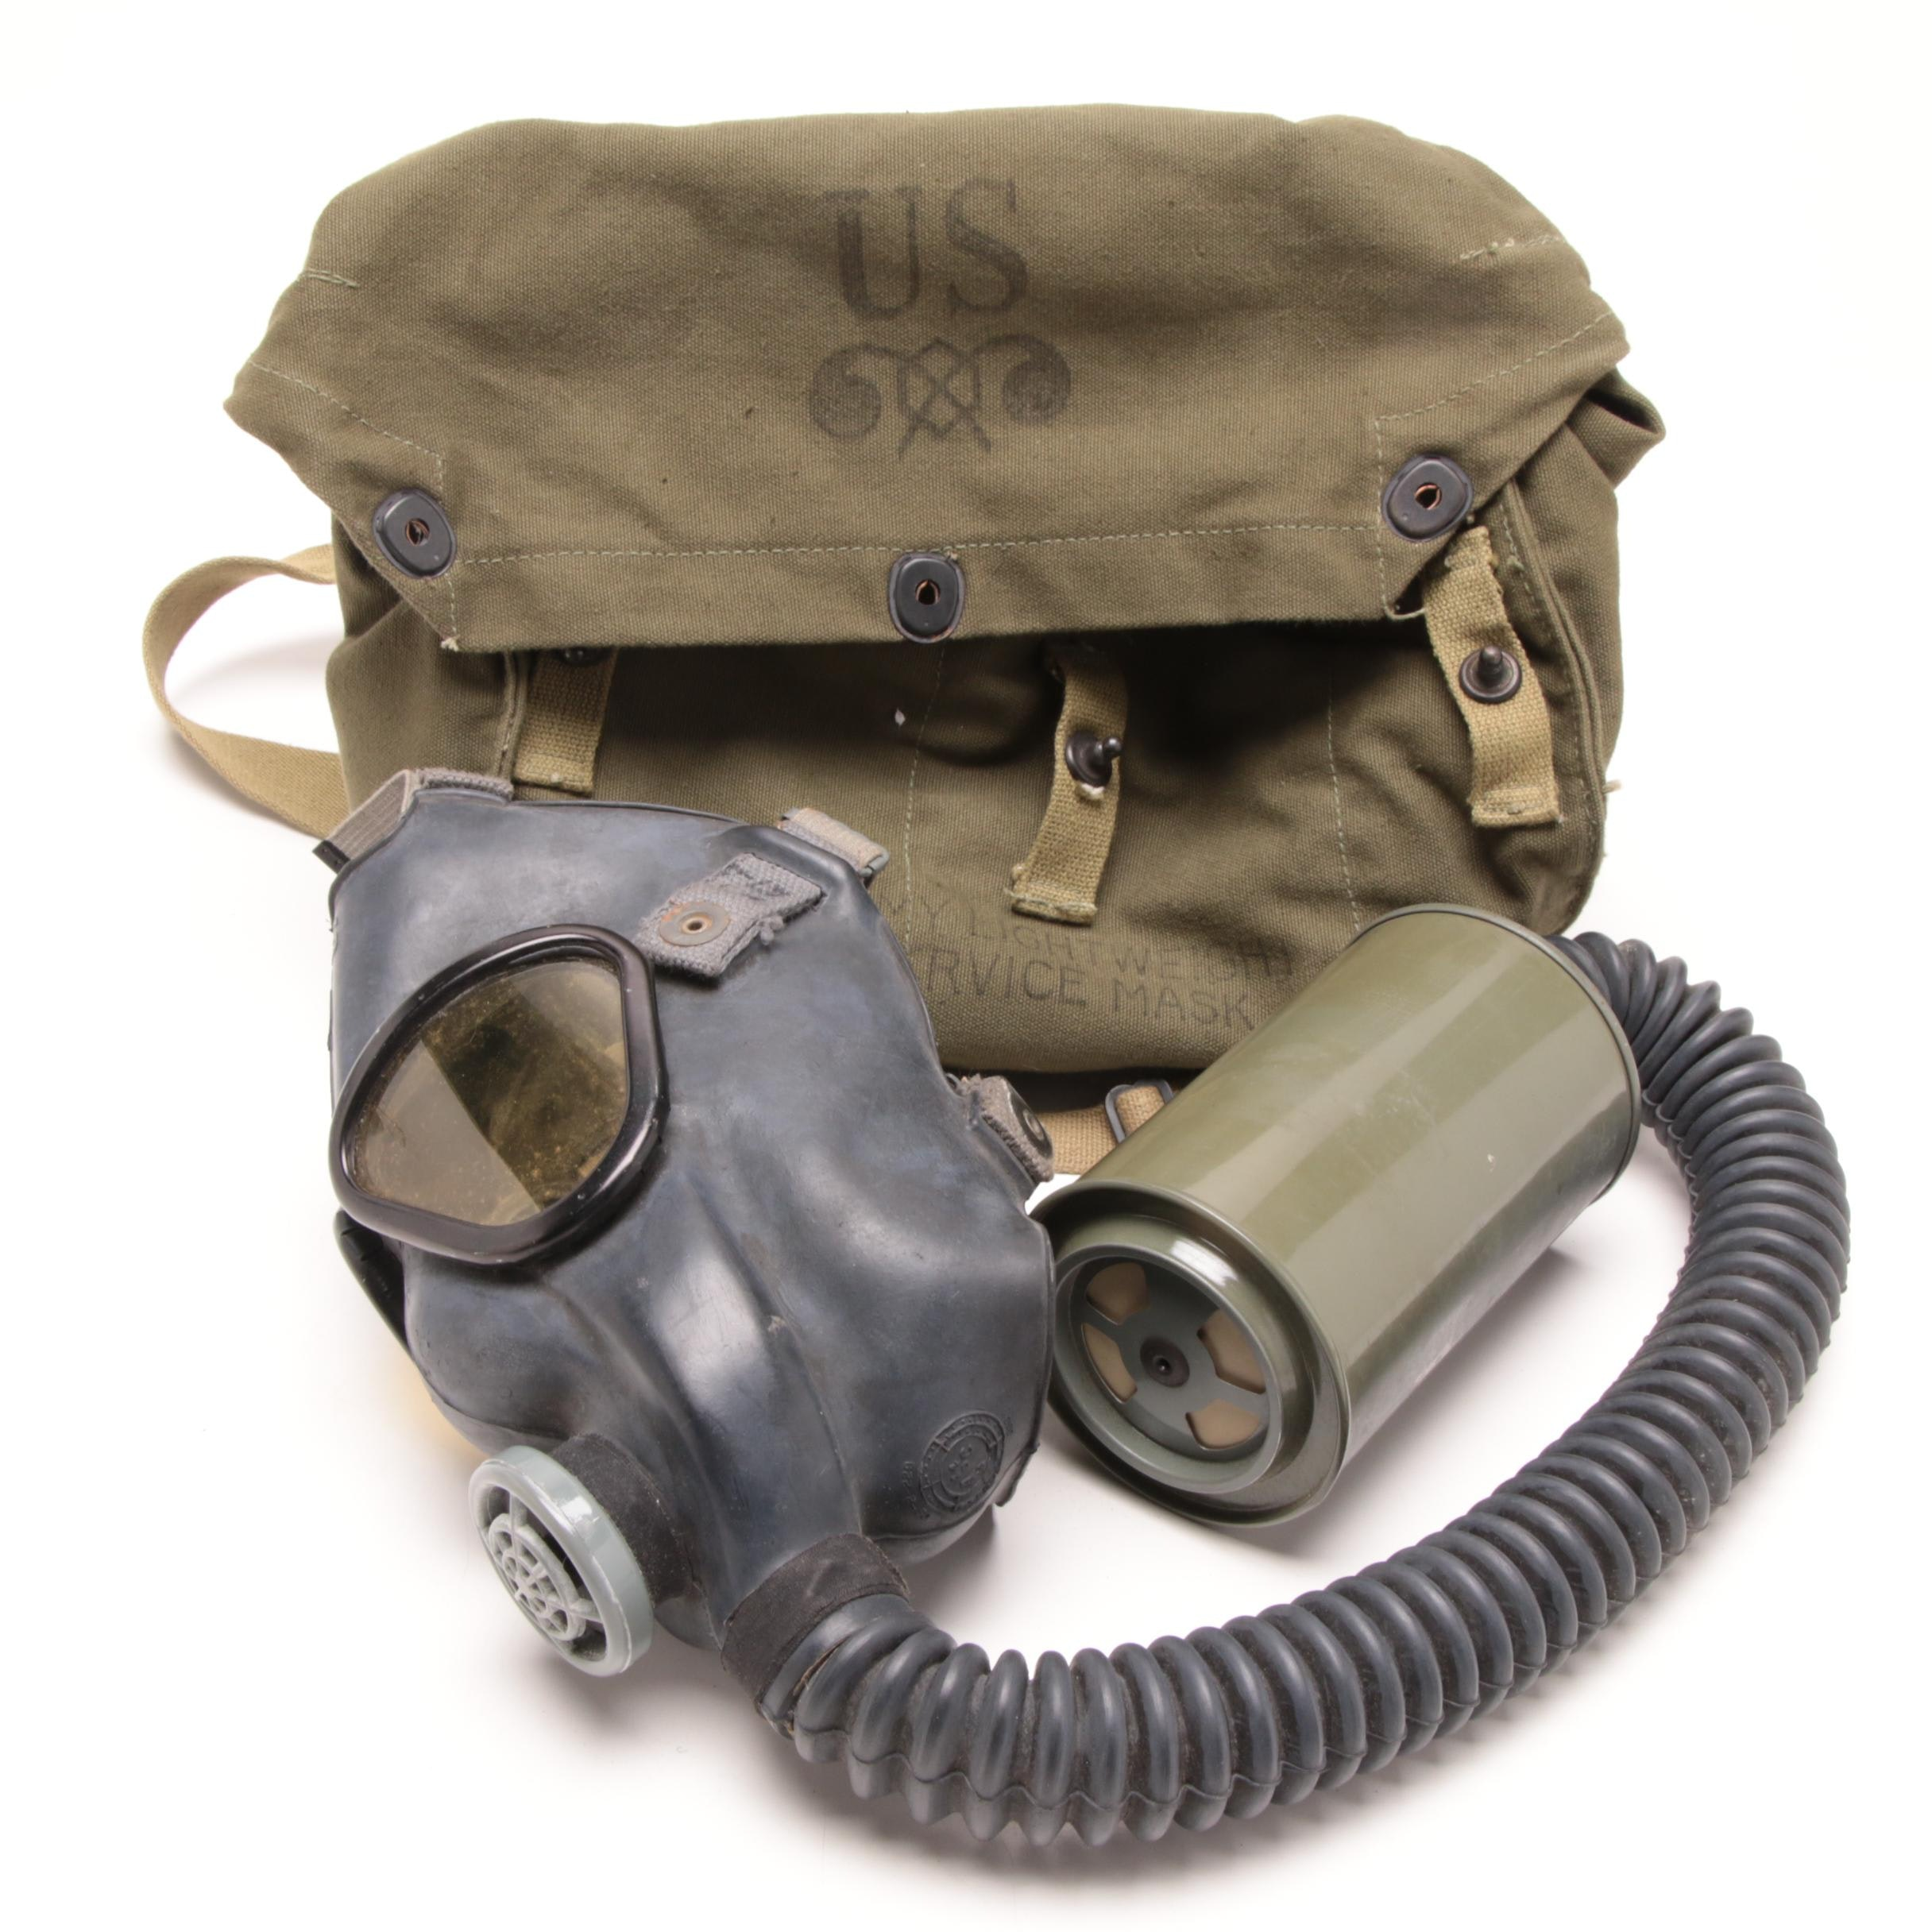 WWII Era United States Army Issued Light Weight Service Mask with Backpack